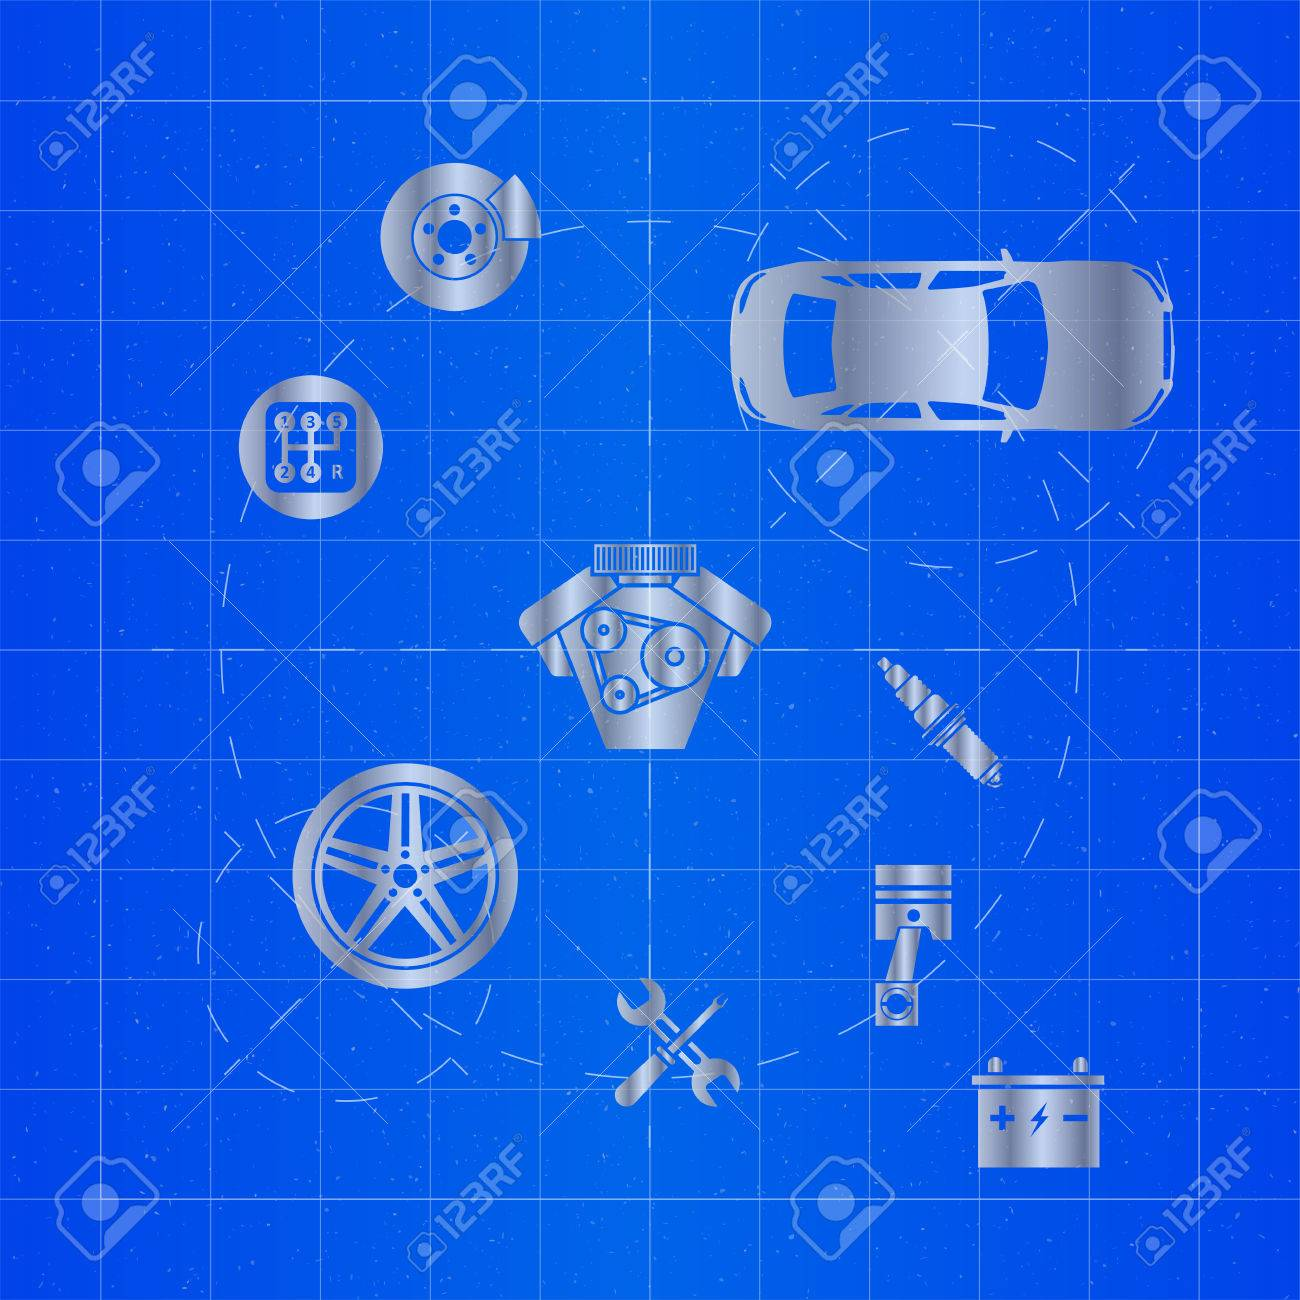 Car parts icons on blueprint royalty free cliparts vectors and car parts icons on blueprint stock vector 84919851 malvernweather